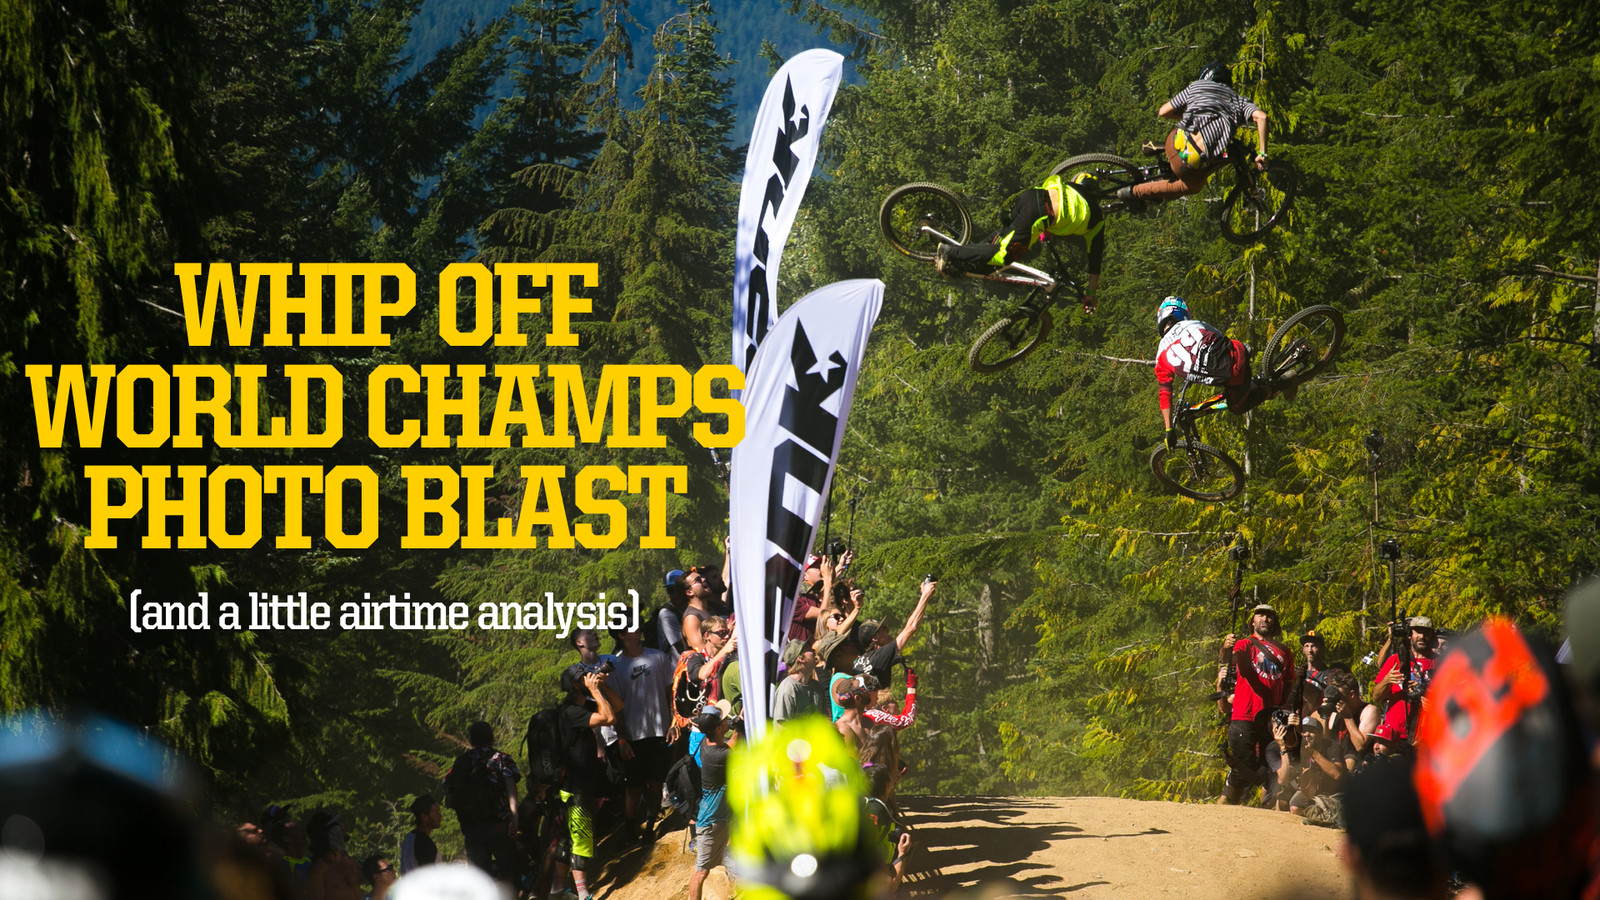 Boost Off World Champs?! - Whip Off World Champs Photo Blast - Mountain Biking Pictures - Vital MTB